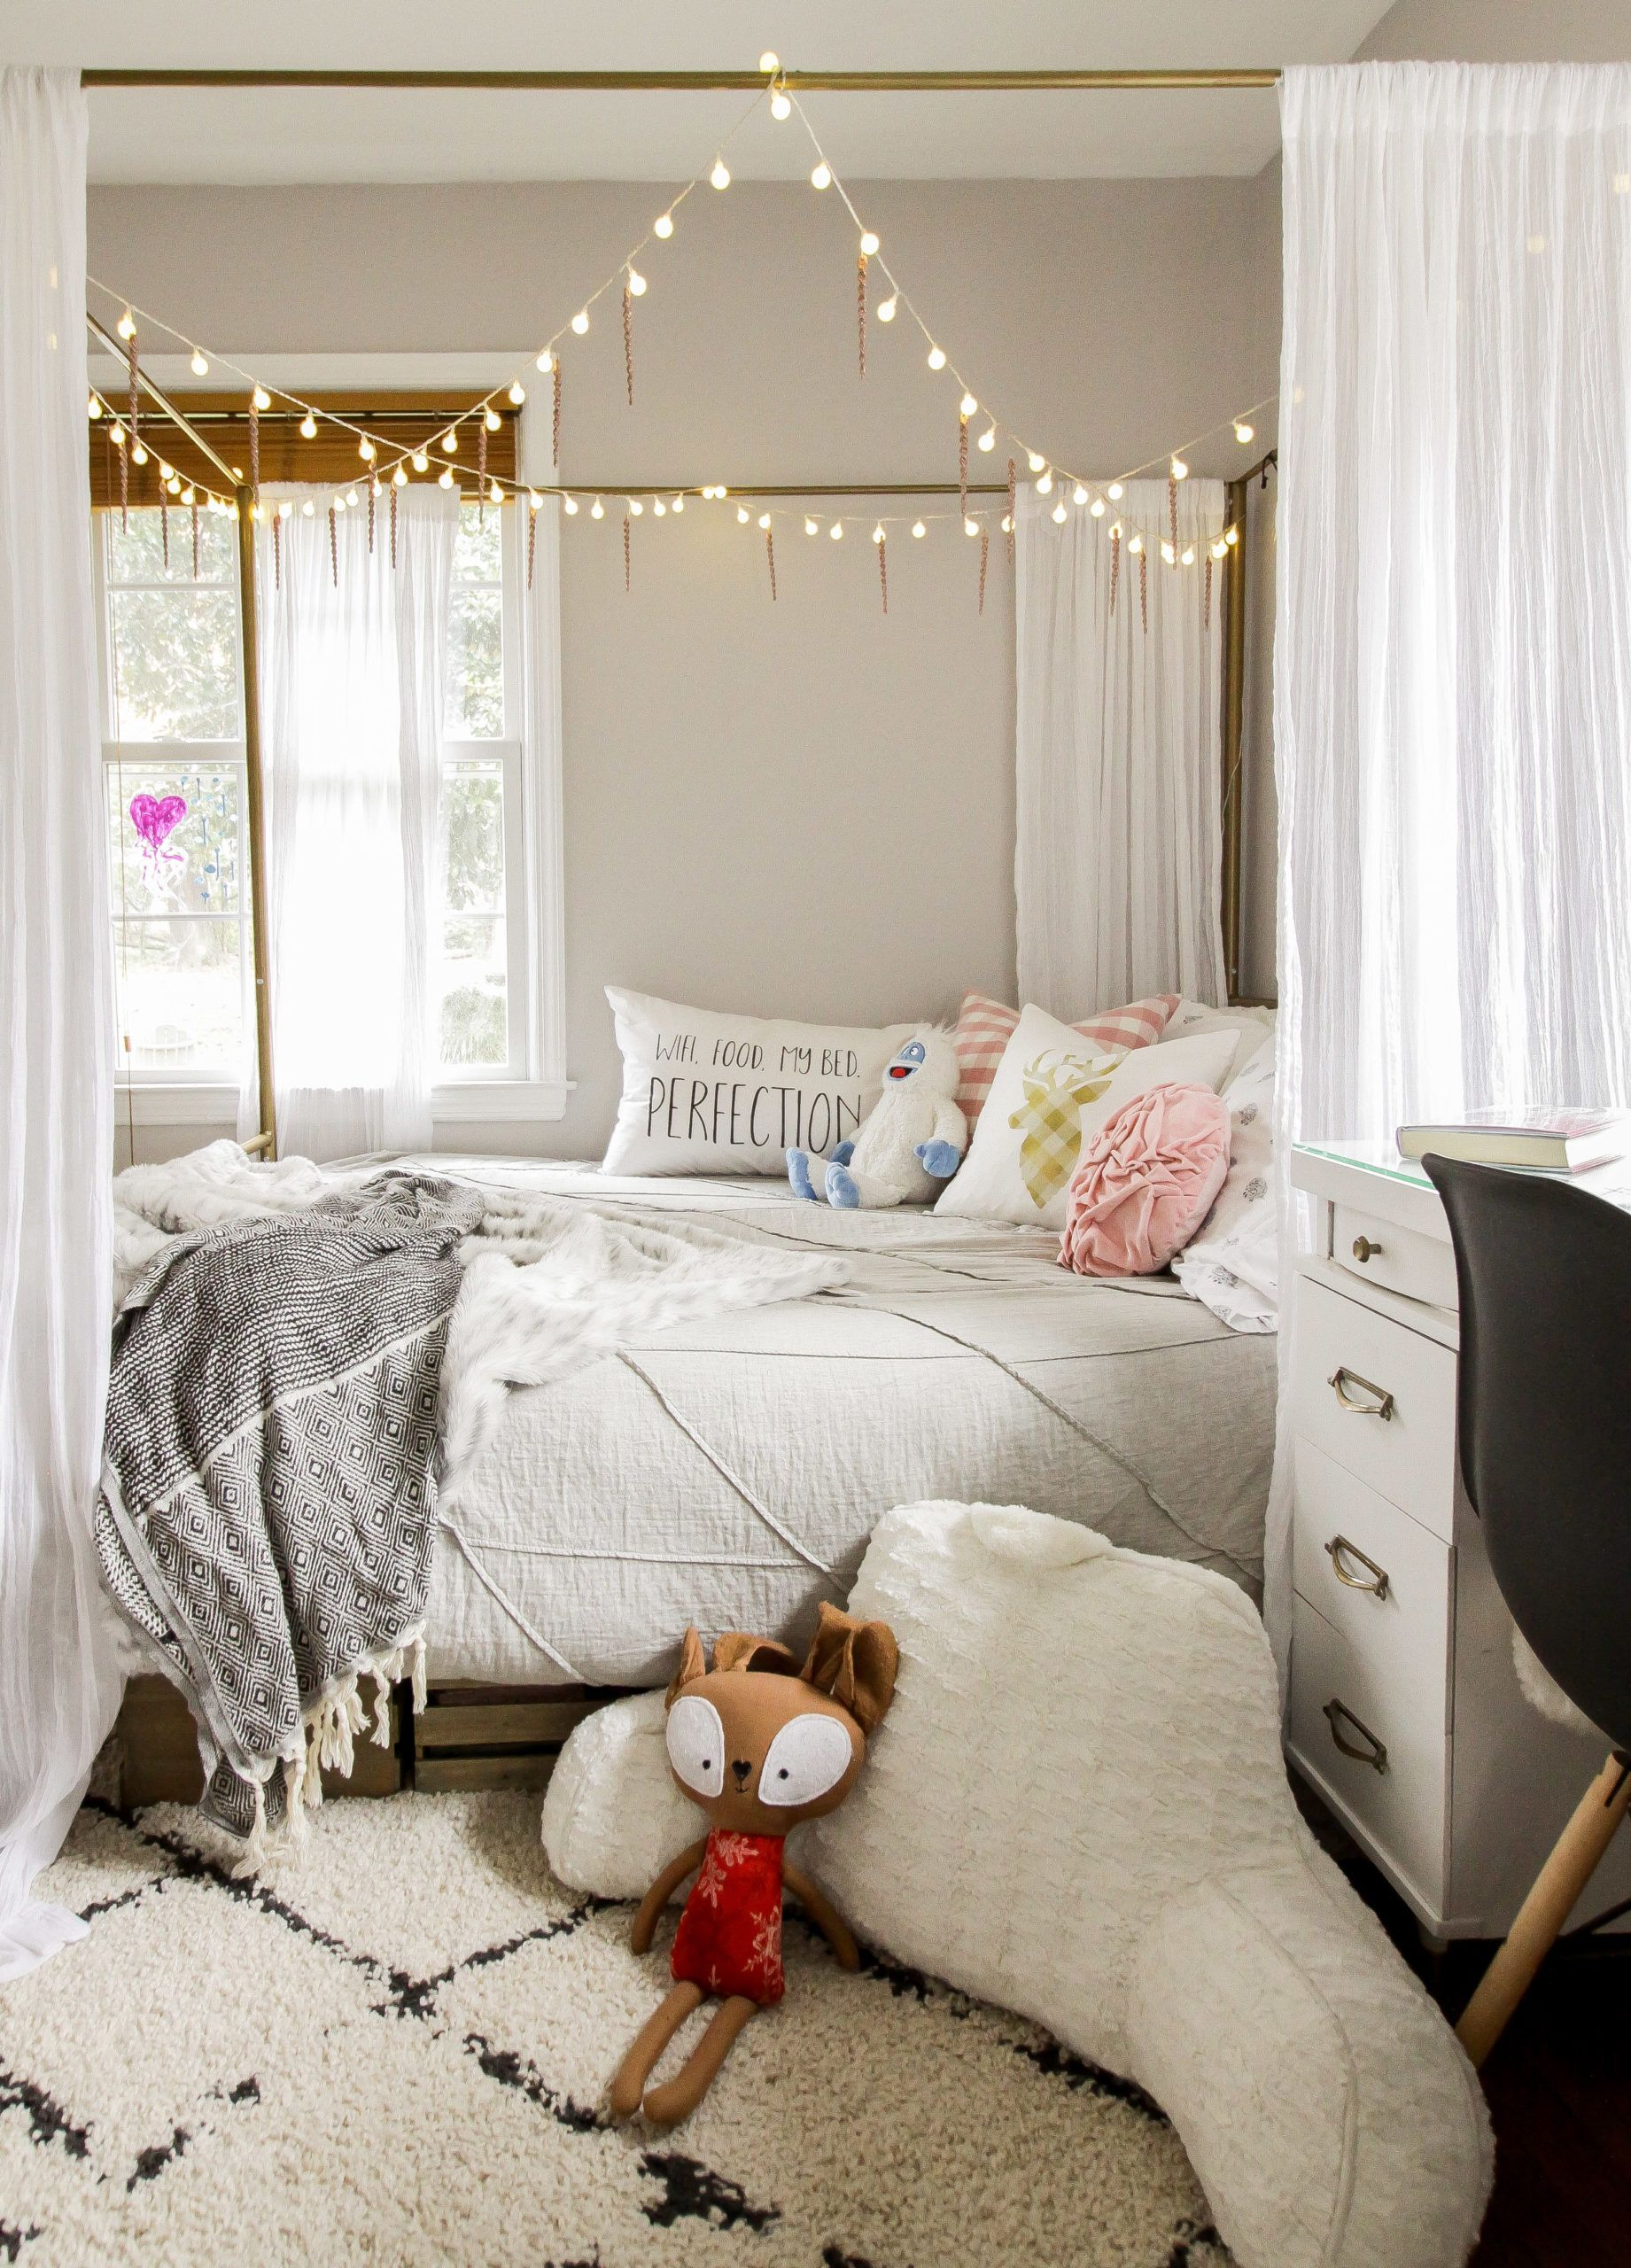 Christmas In The Kids Rooms Christmas Decorations Bedroom Redecorate Bedroom Cute Room Decor The girls christmas bedroom